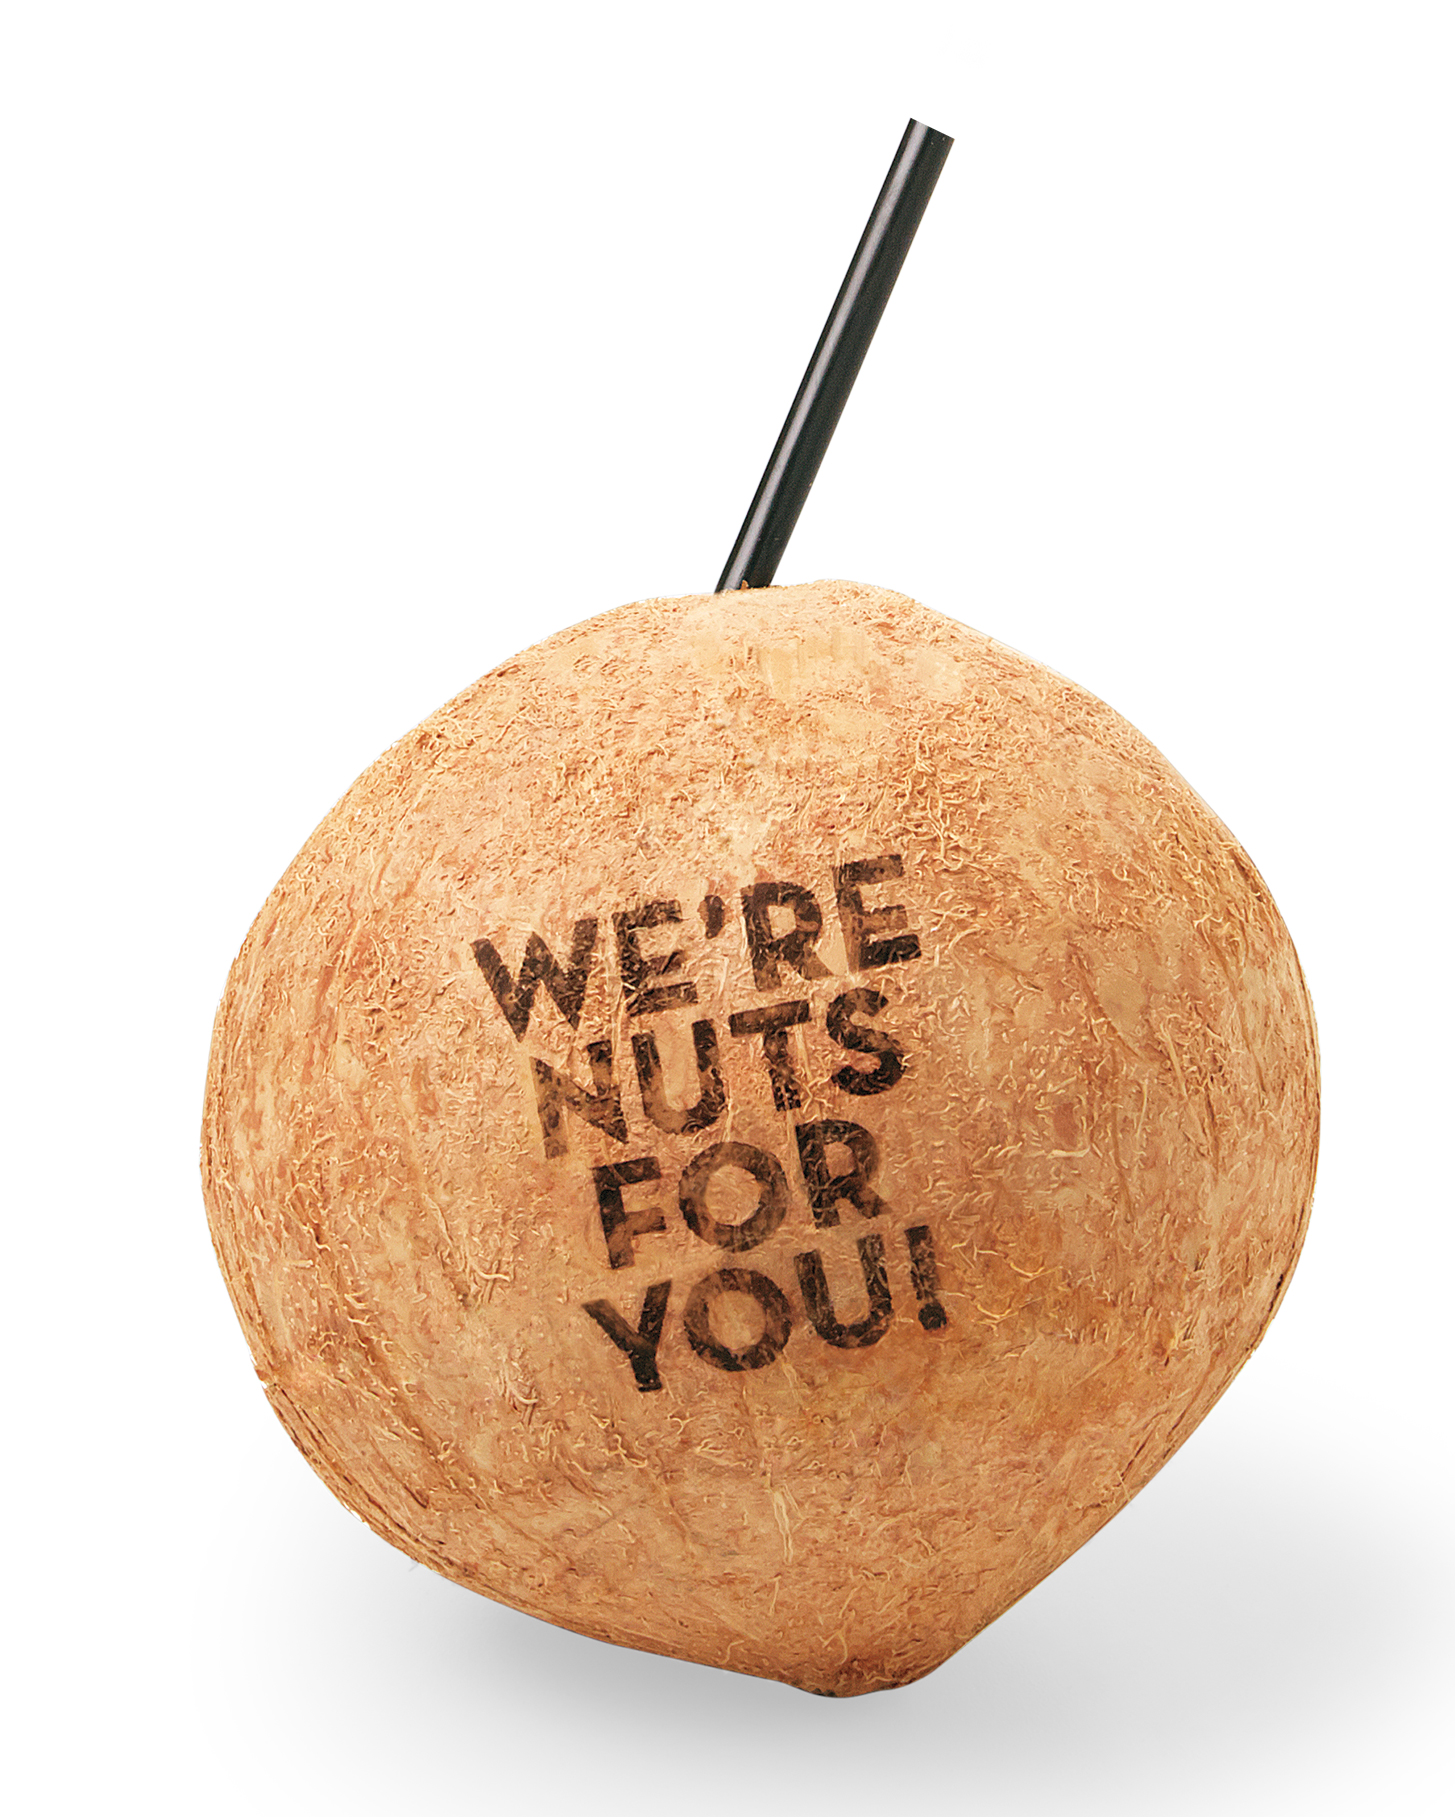 personalized-coconuts-0032-d112196.jpg